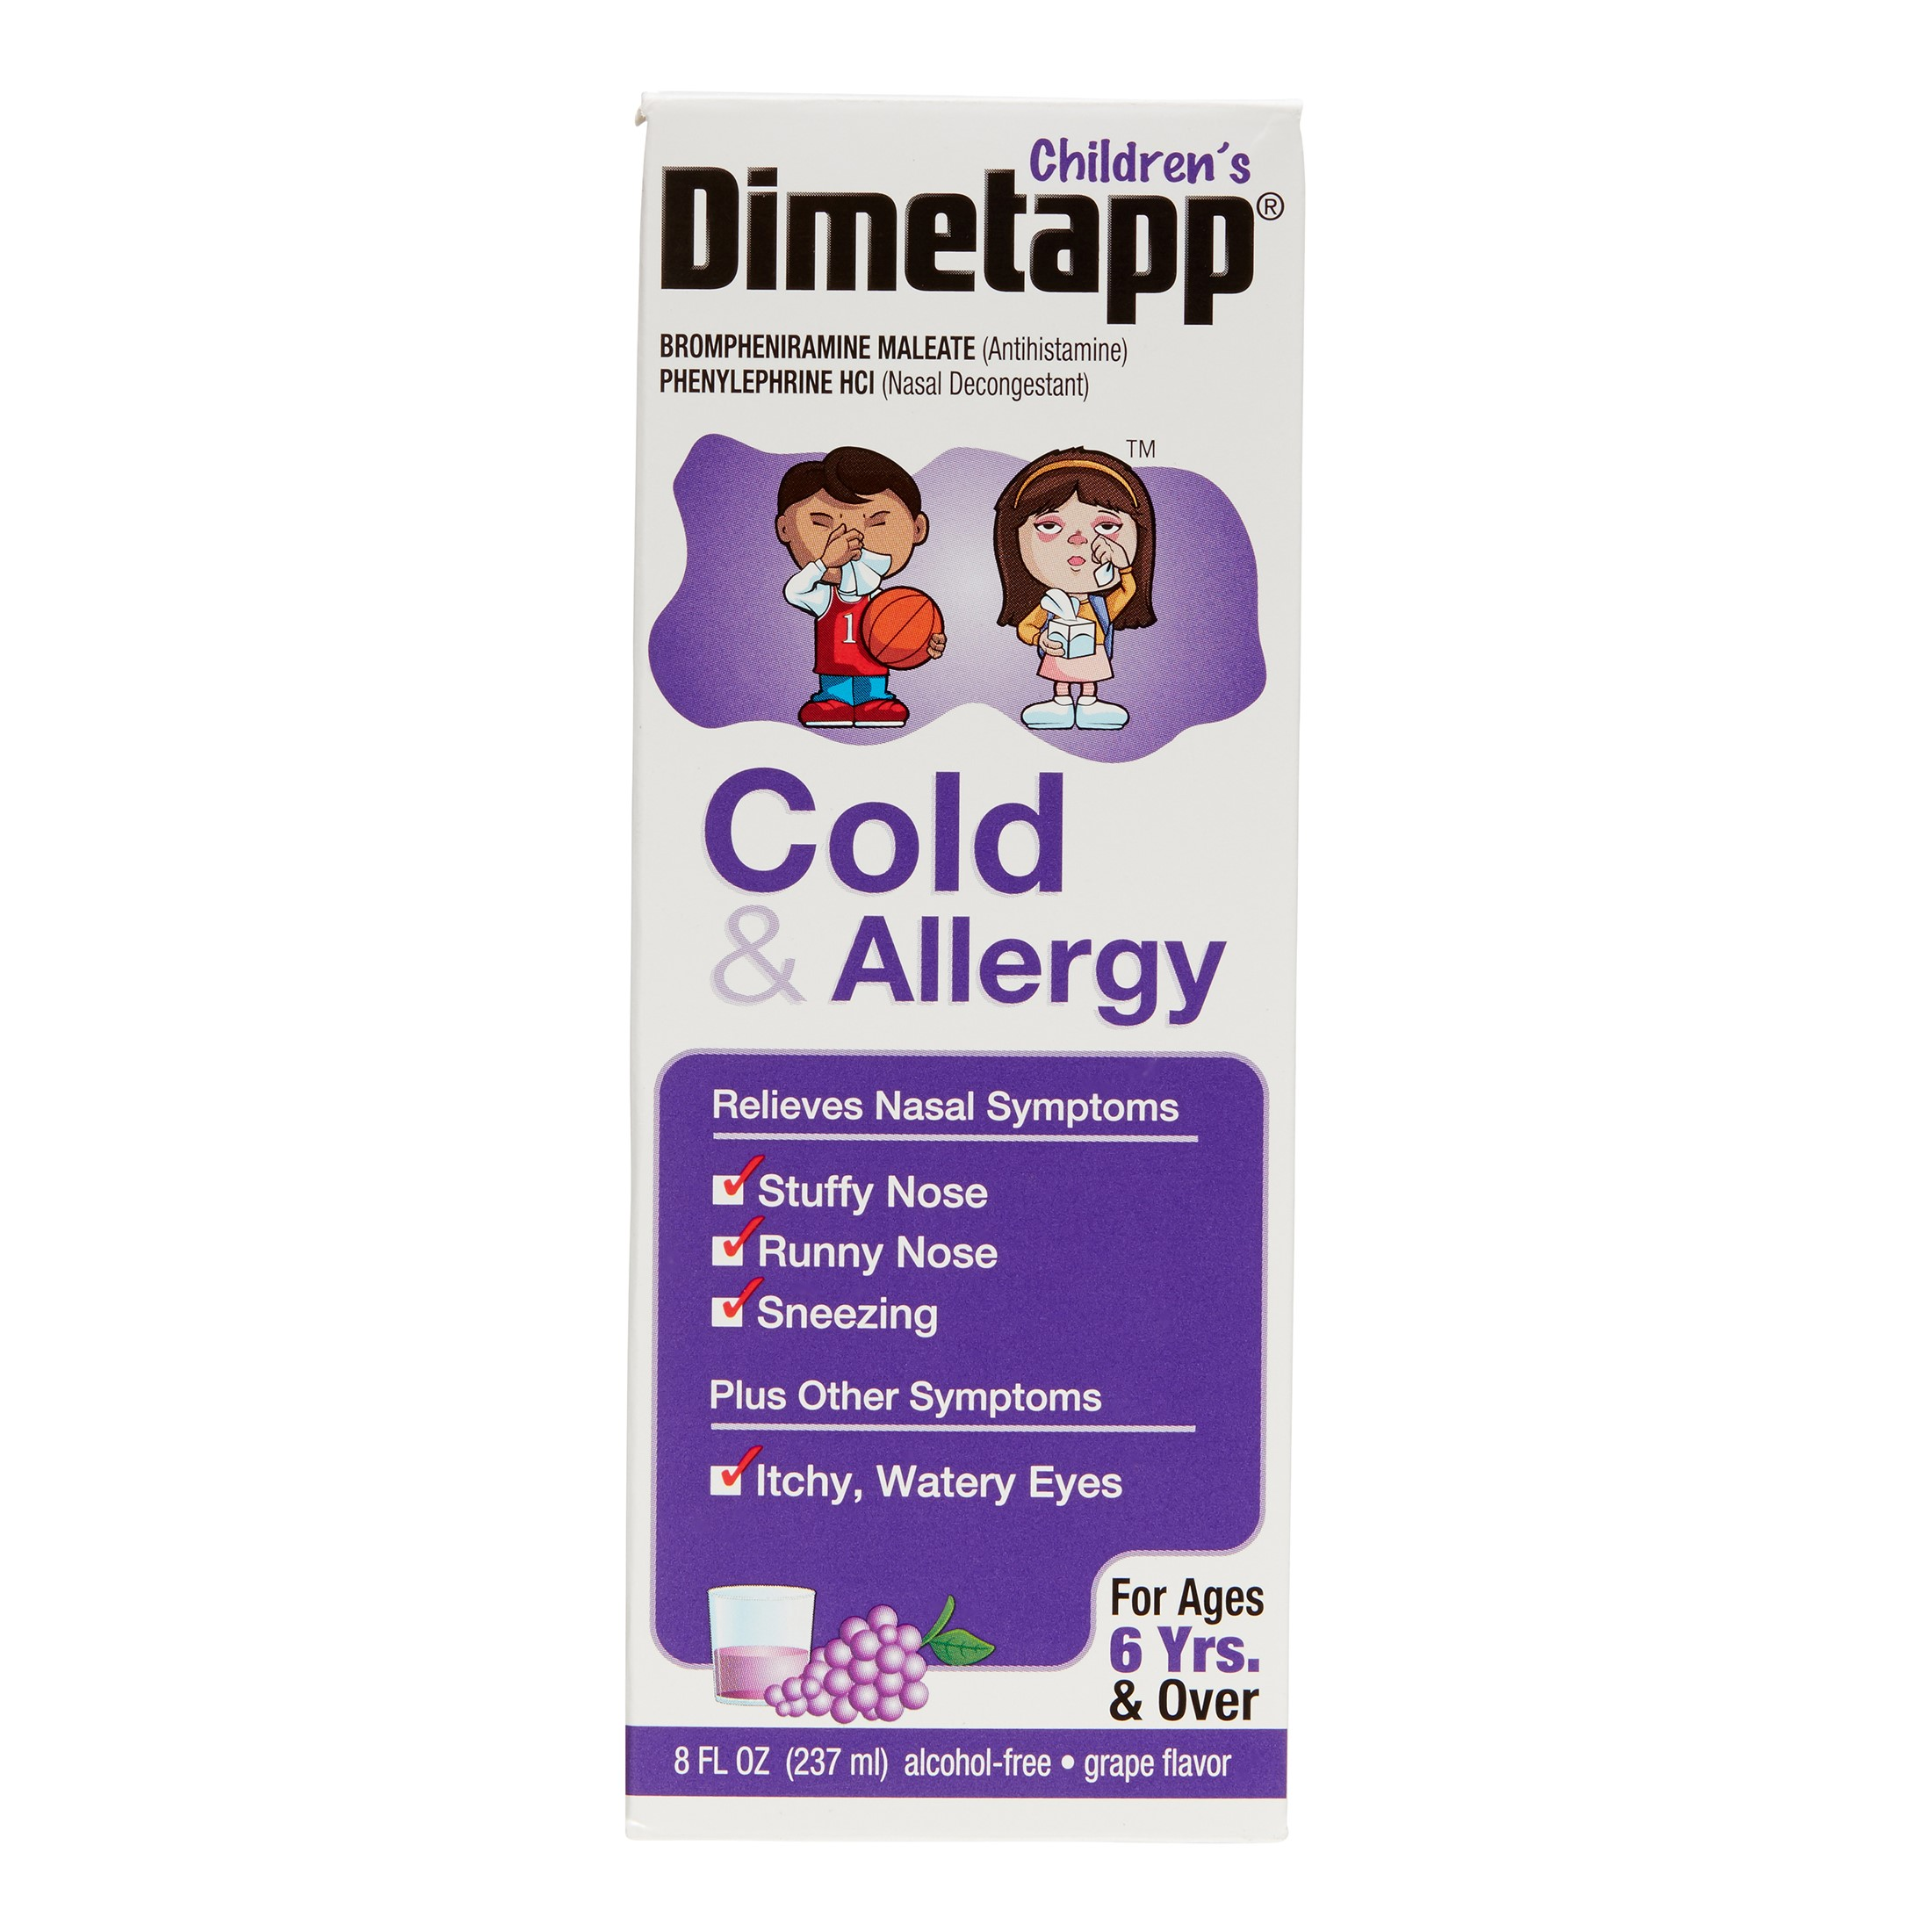 Children's Dimetapp Cold & Allergy Antihistamine & Decongestant Liquid 8 fl oz